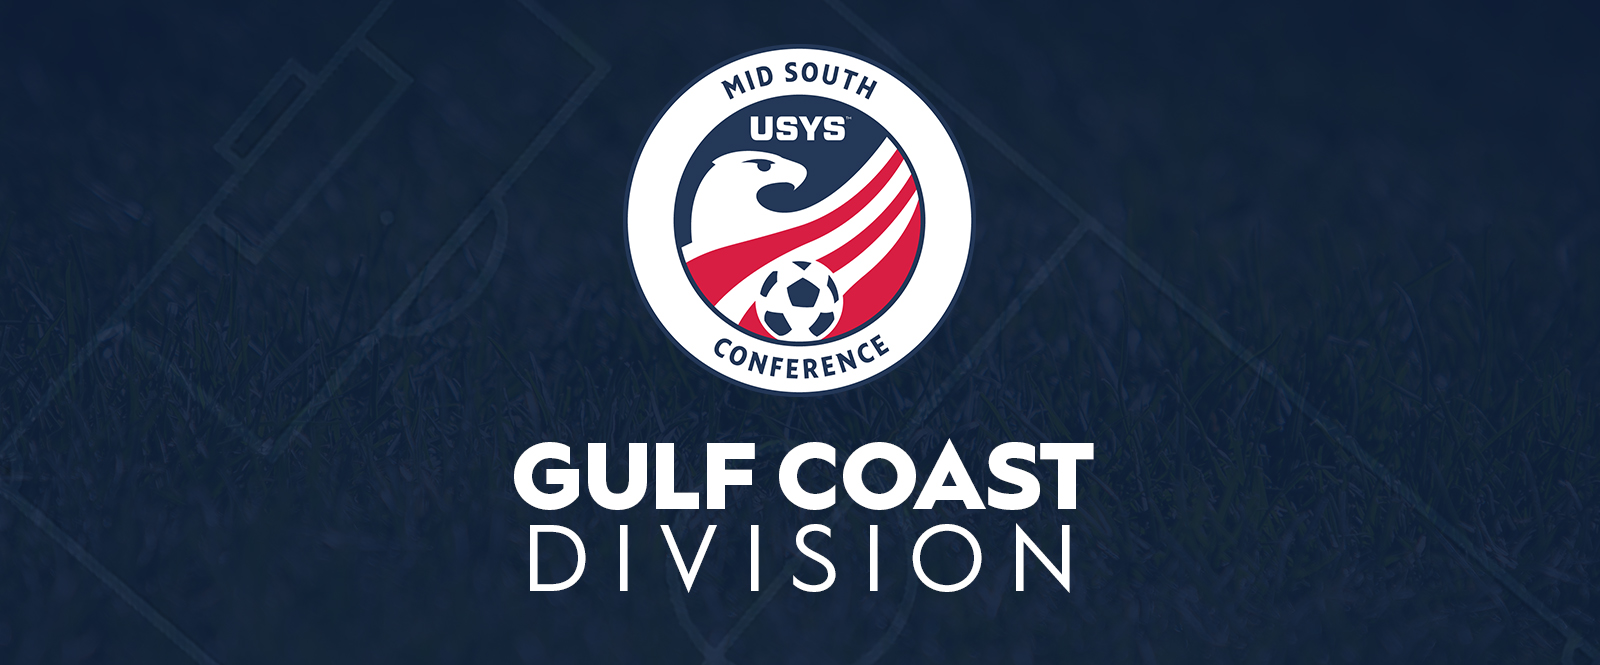 Gulf_Coast_Division_top